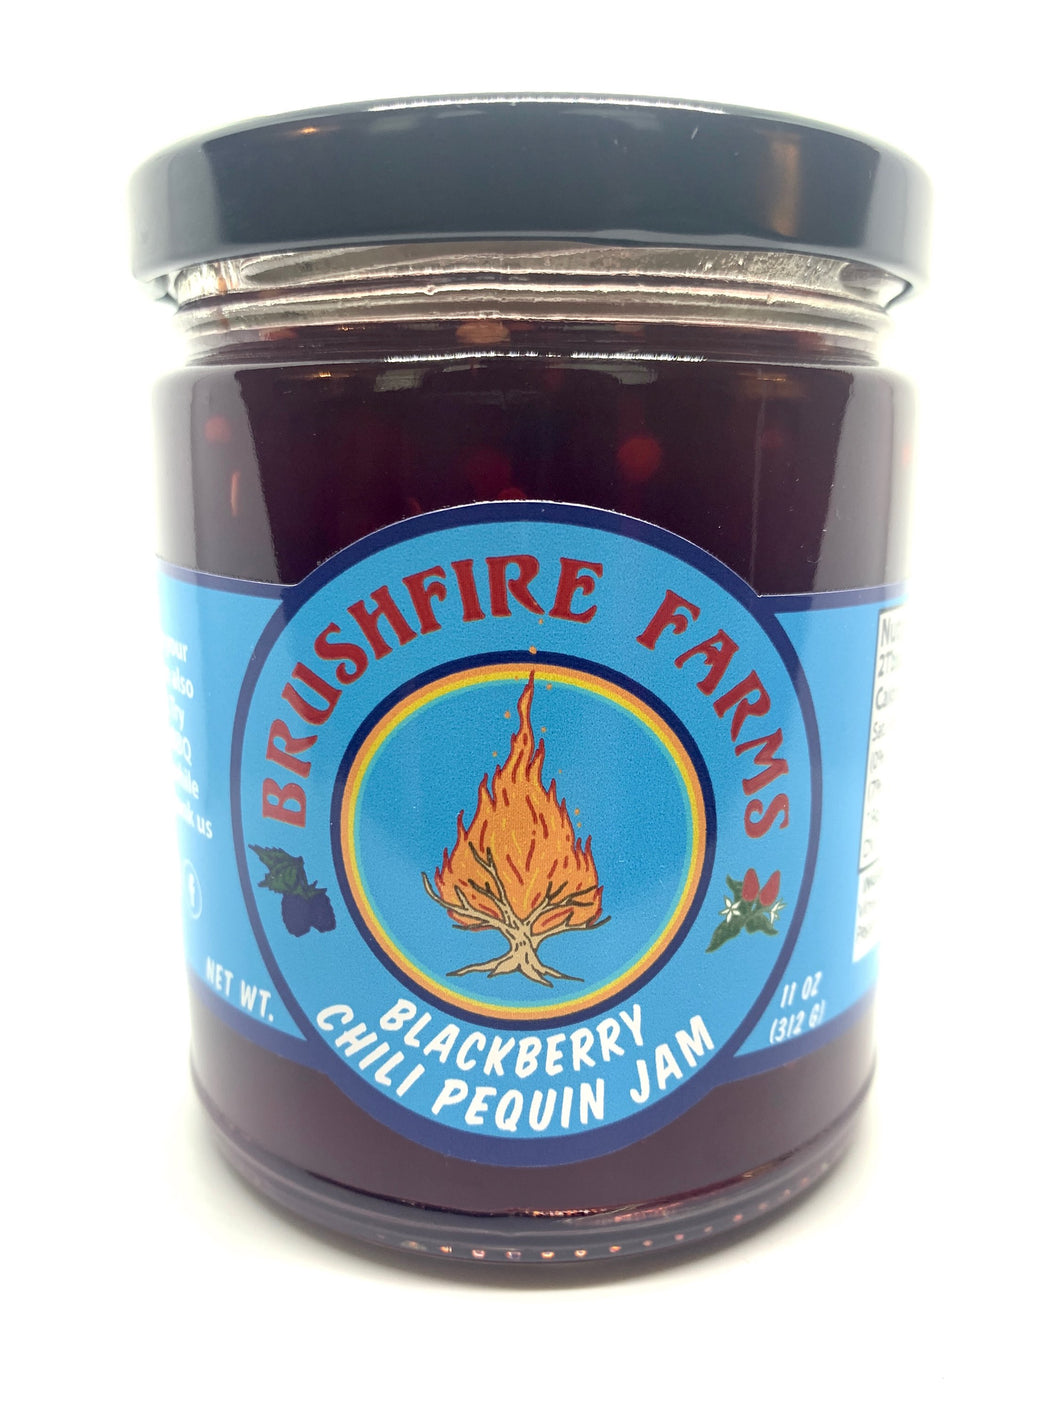 Blackberry Chili Pequin Jam